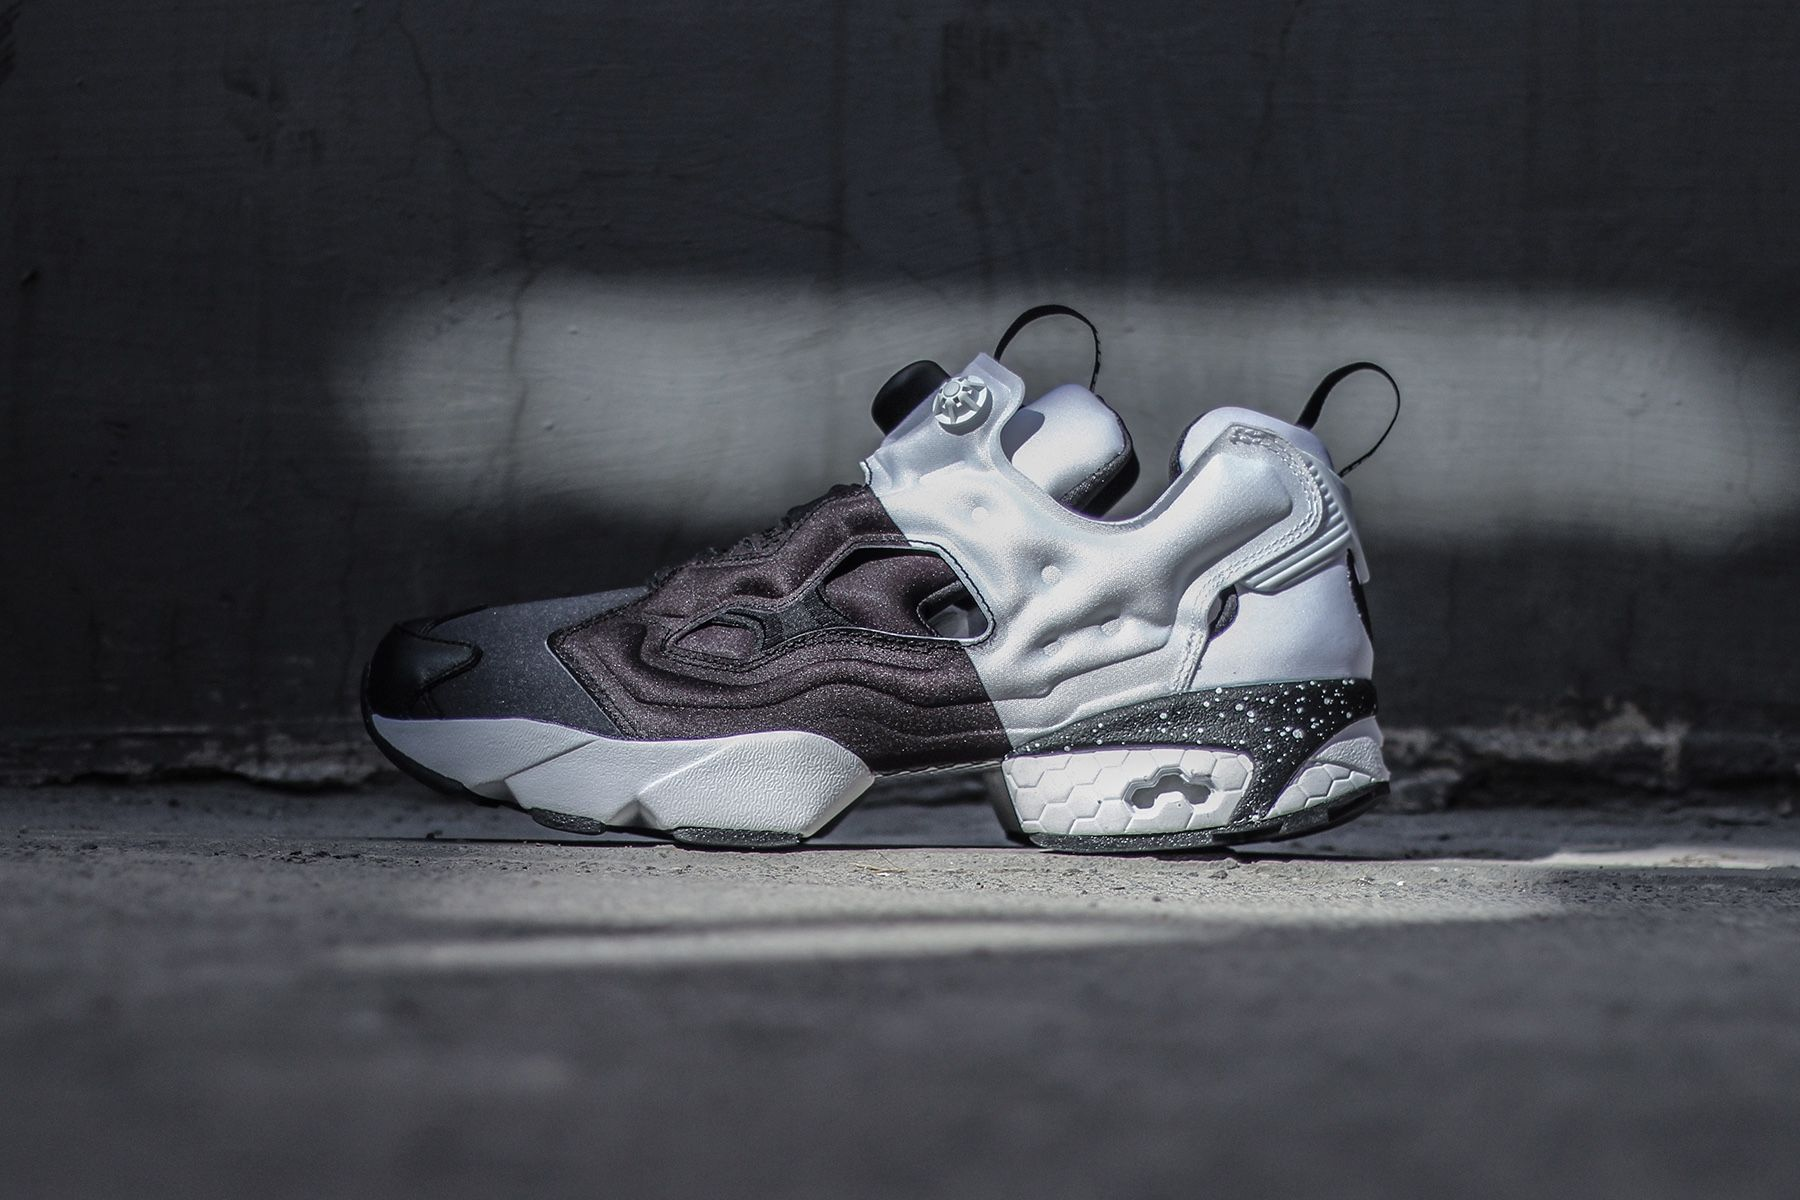 9fa5d4fbae8 DEAL Puts a Tai Chi-Inspired Spin on the Reebok Instapump Fury ...